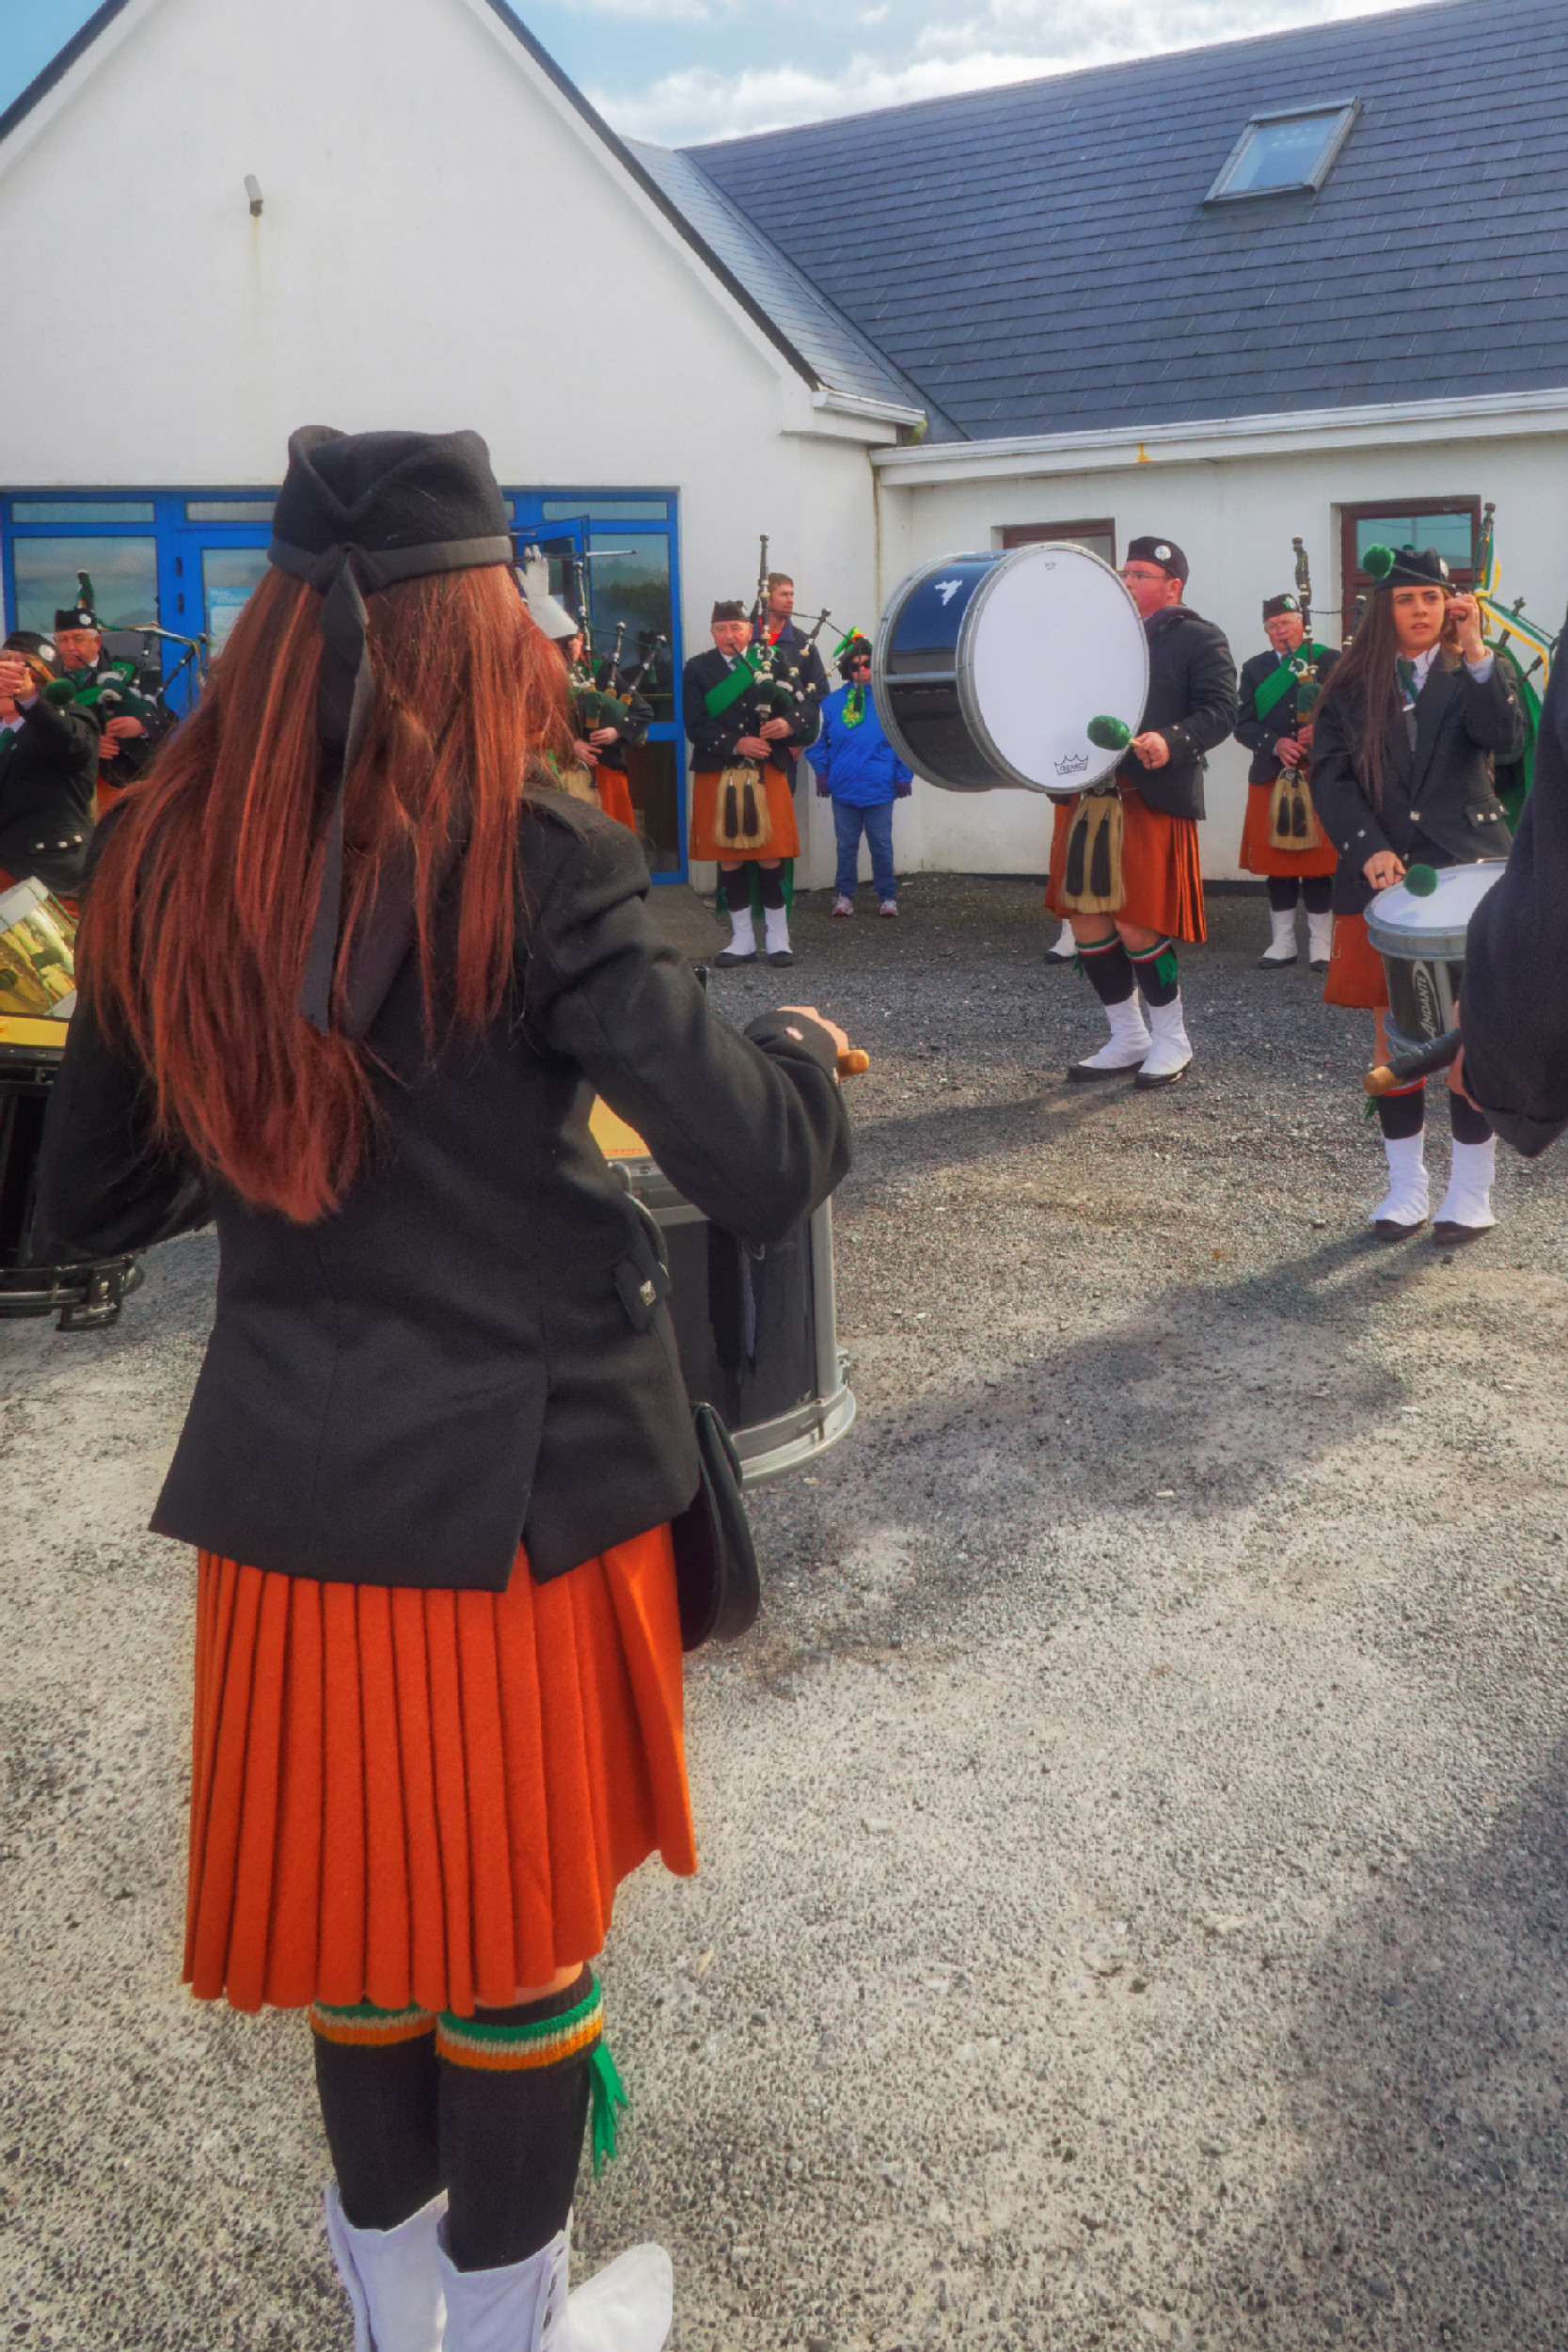 20160320131435-ie-achill-sound_parade-_DxO_13in_DxO96